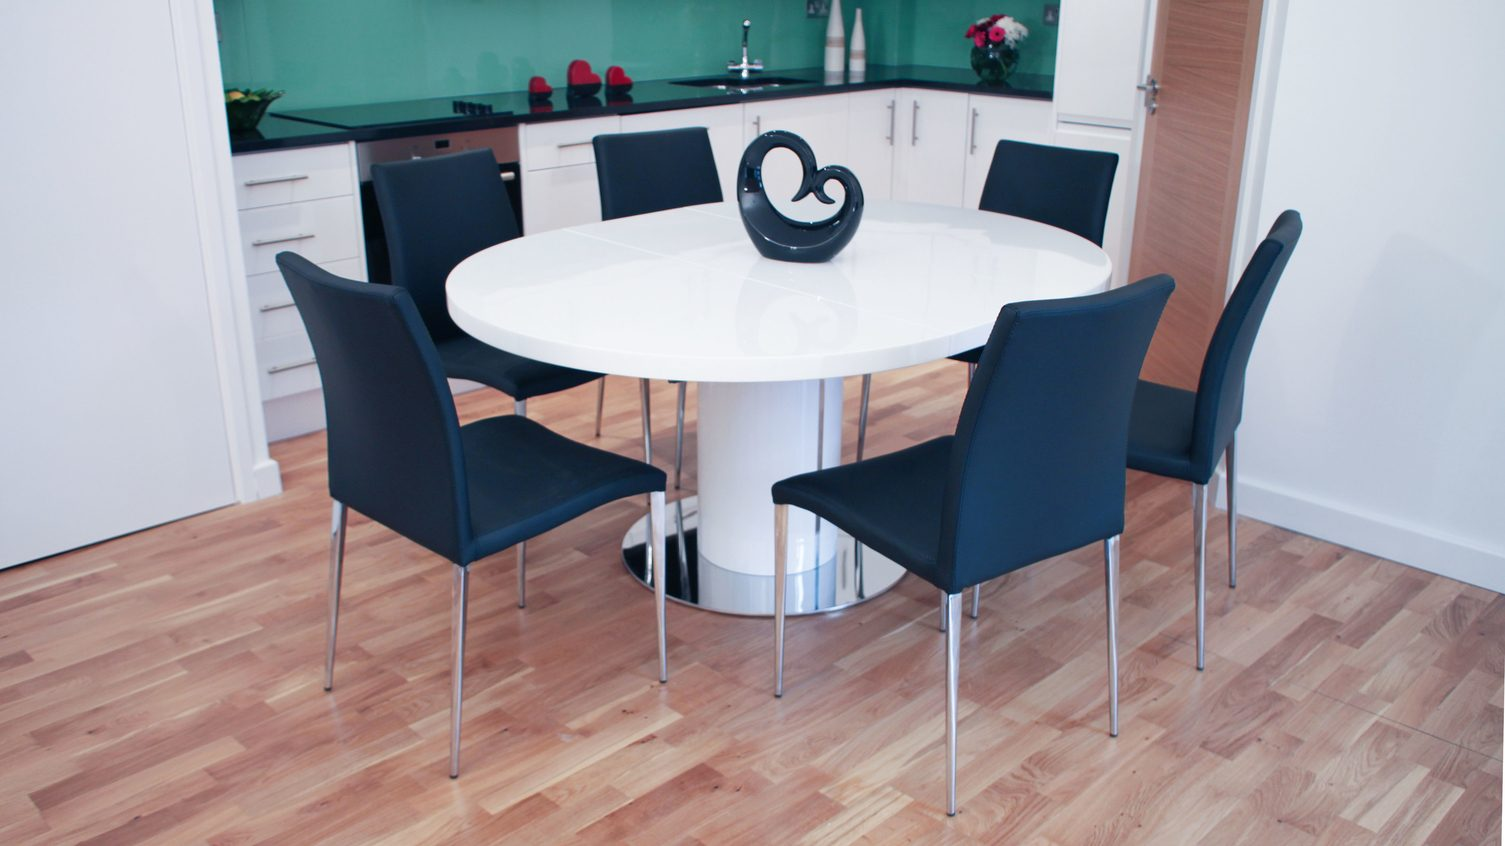 Extending dining room table and chairs uk round extending dining room table and chairs - Extended dining table sets ...